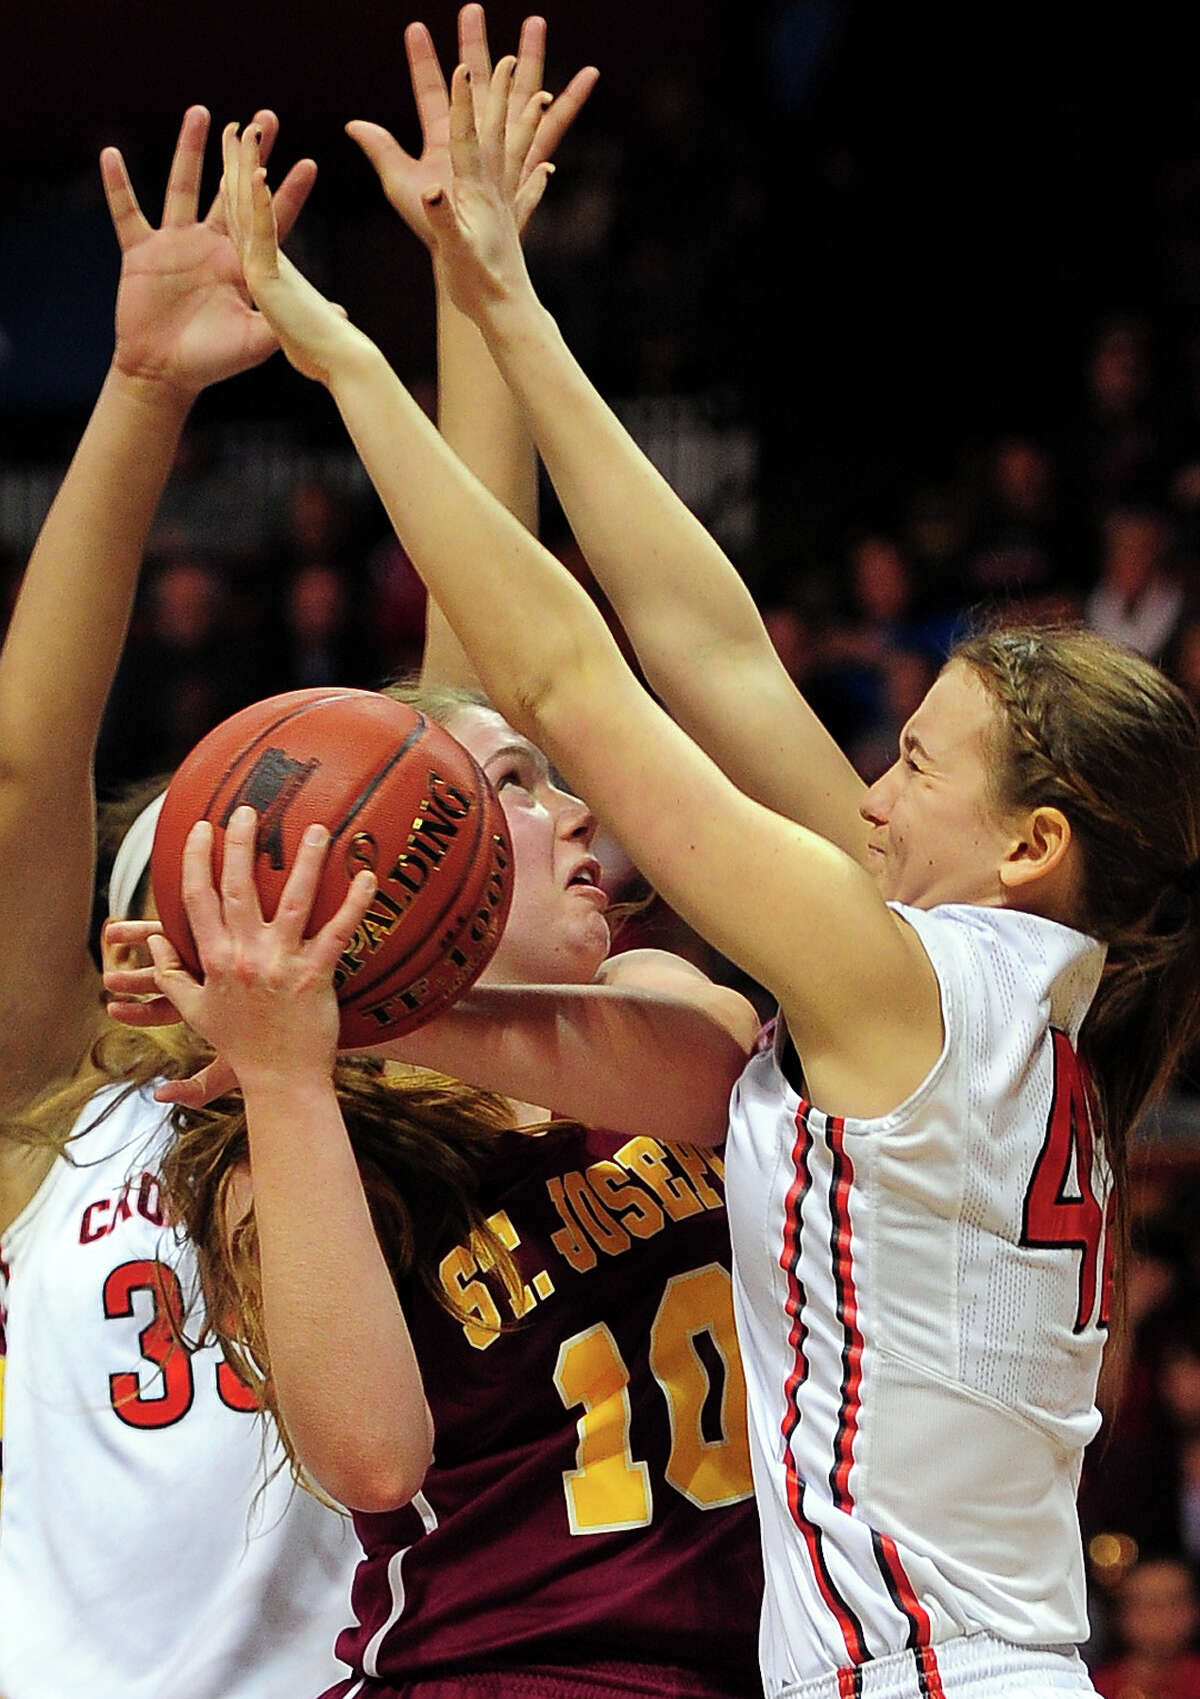 St. Joseph's Bridget Sharnick gets sandwiched between Cromwell players Geanna Williams, left, and Theresa Quinn, right, during CIAC State Girls Basketball Tournament action at Mohegan Sun in Uncasville, Conn., on Saturday Mar. 21, 2015.